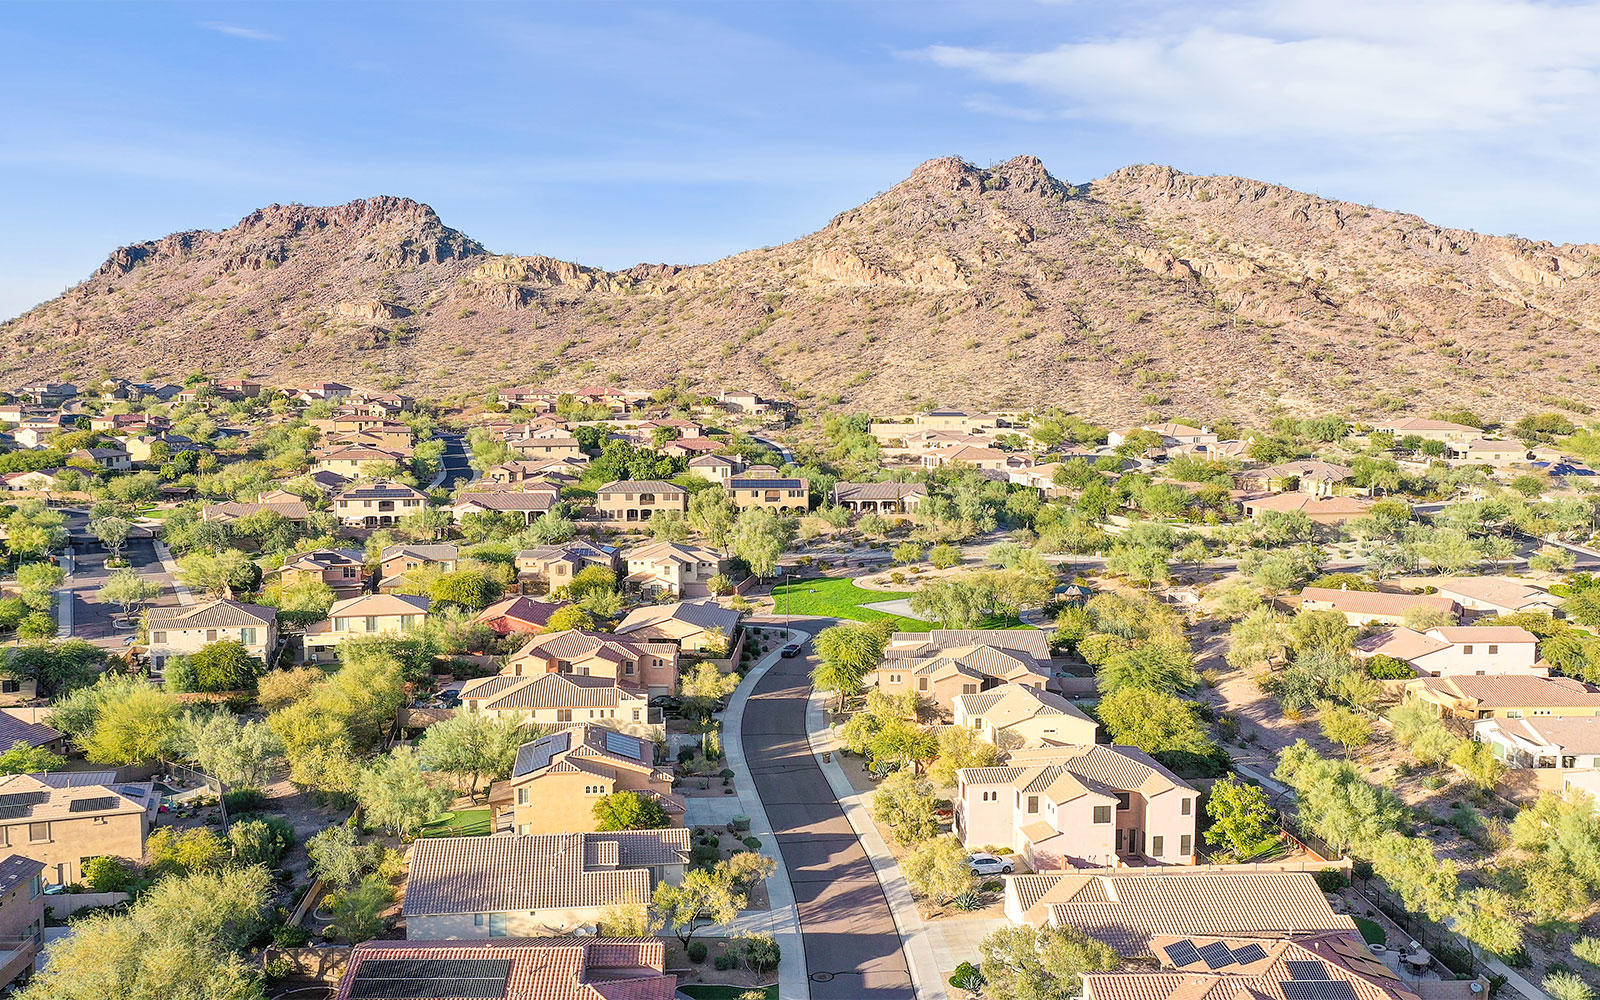 Aerial view of homes and mountains in WestWing Mountain in Peoria, Arizona